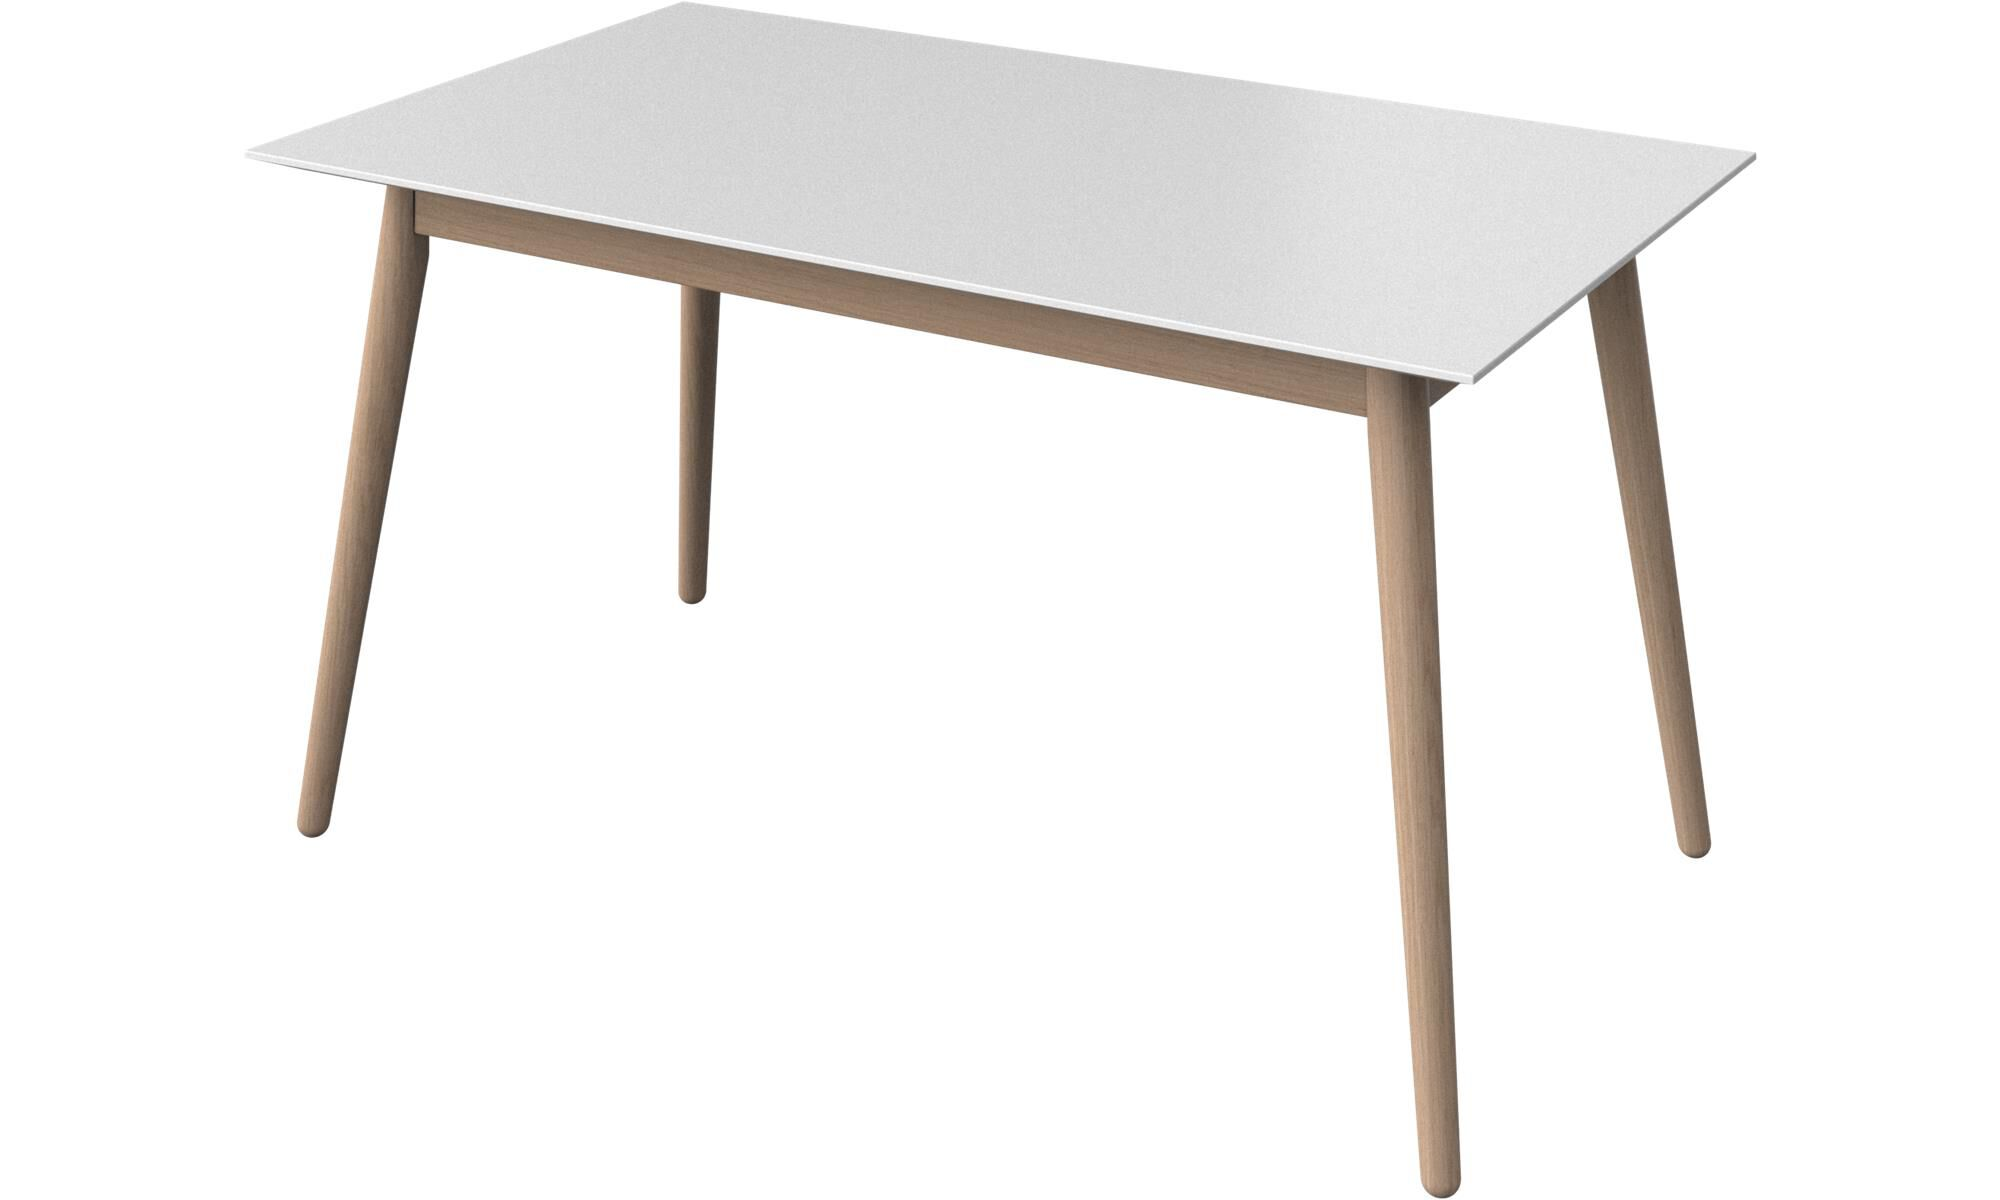 Modern Dining Tables Contemporary Design from BoConcept